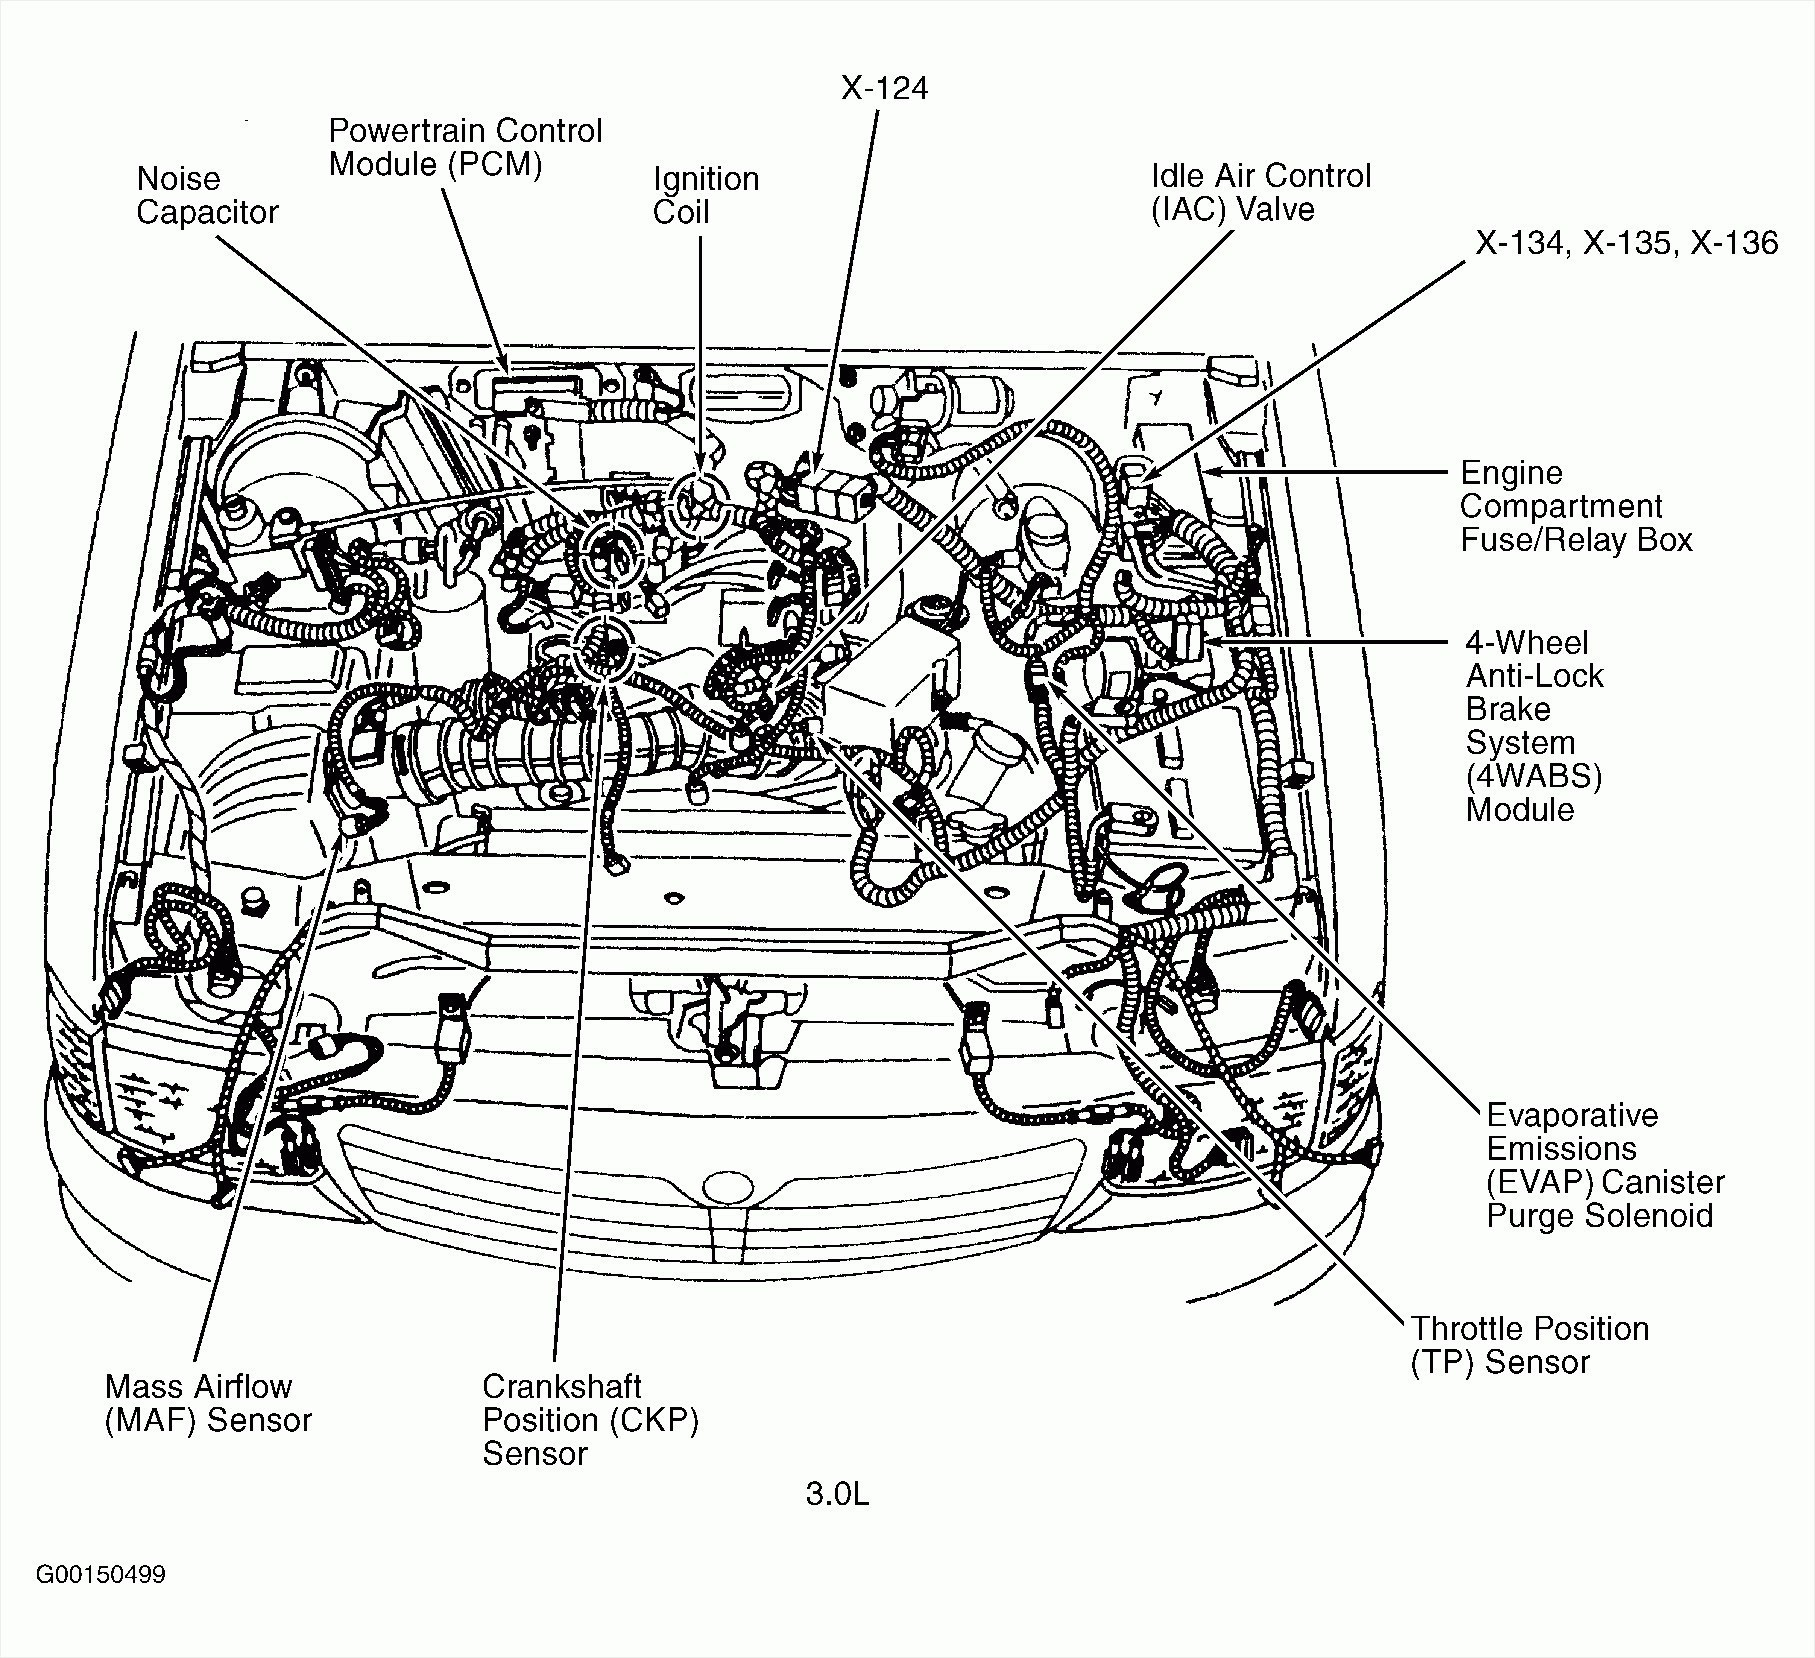 [SCHEMATICS_4FD]  Saturn Engine Diagram -Yamaha Dt 100 Dt175 Enduro Motorcycle Wiring  Schematics Diagram | Begeboy Wiring Diagram Source | Saturn Relay Engine Diagram |  | Begeboy Wiring Diagram Source